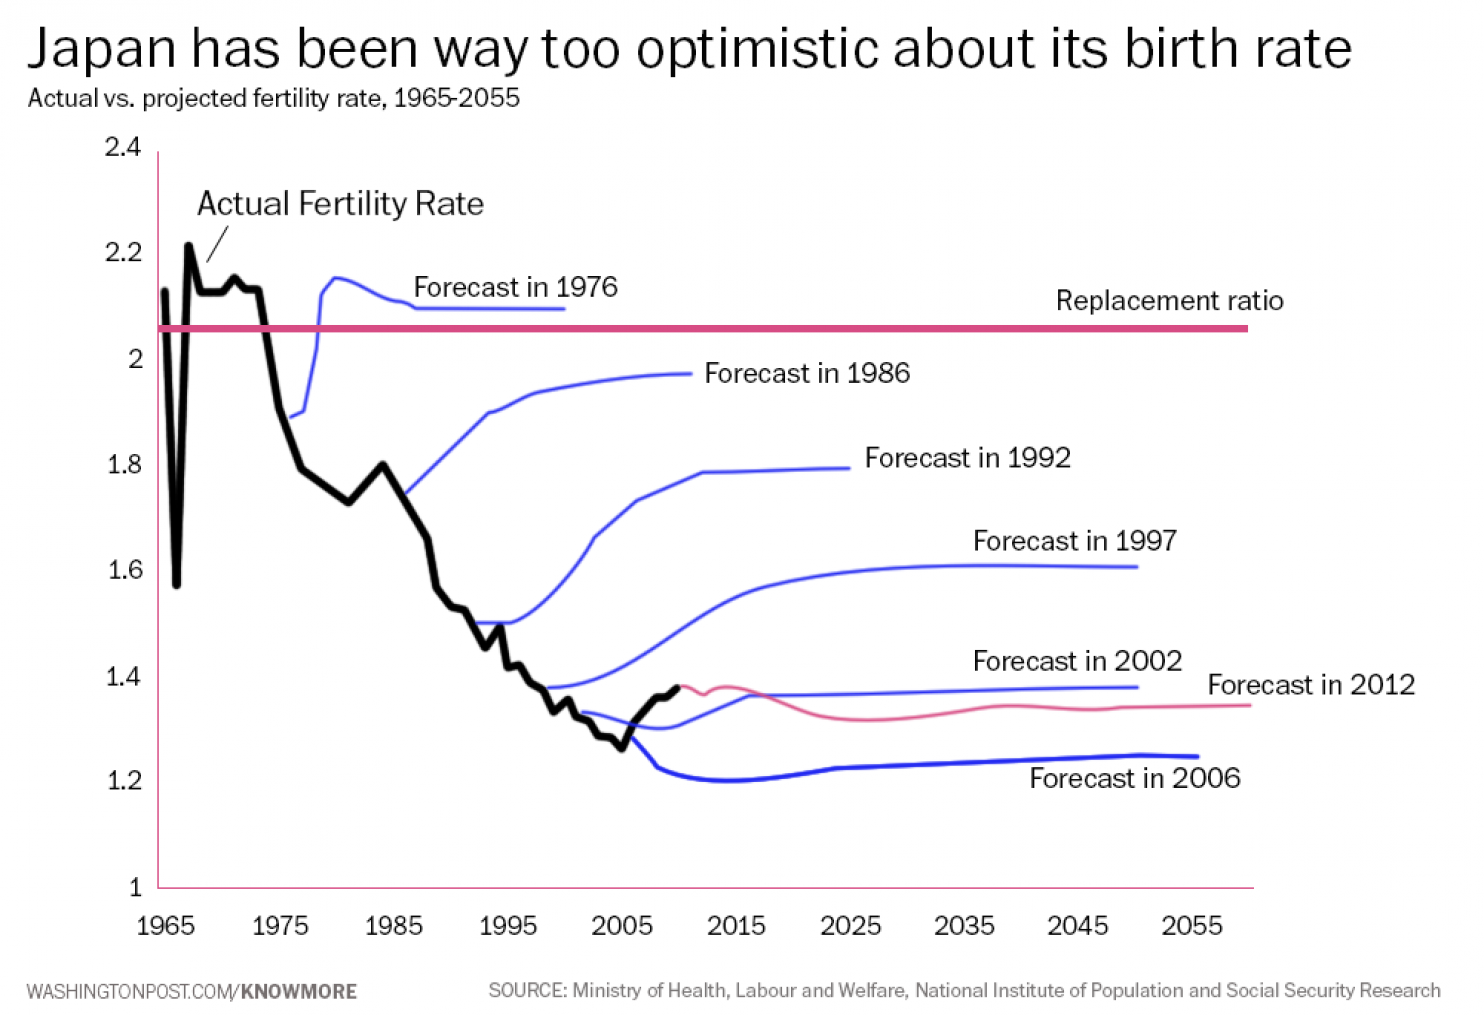 The citation of paper is really just an excuse to show following graph also noahpinion japan   fertility rate rising and you all missed it rh noahpinionblogspot